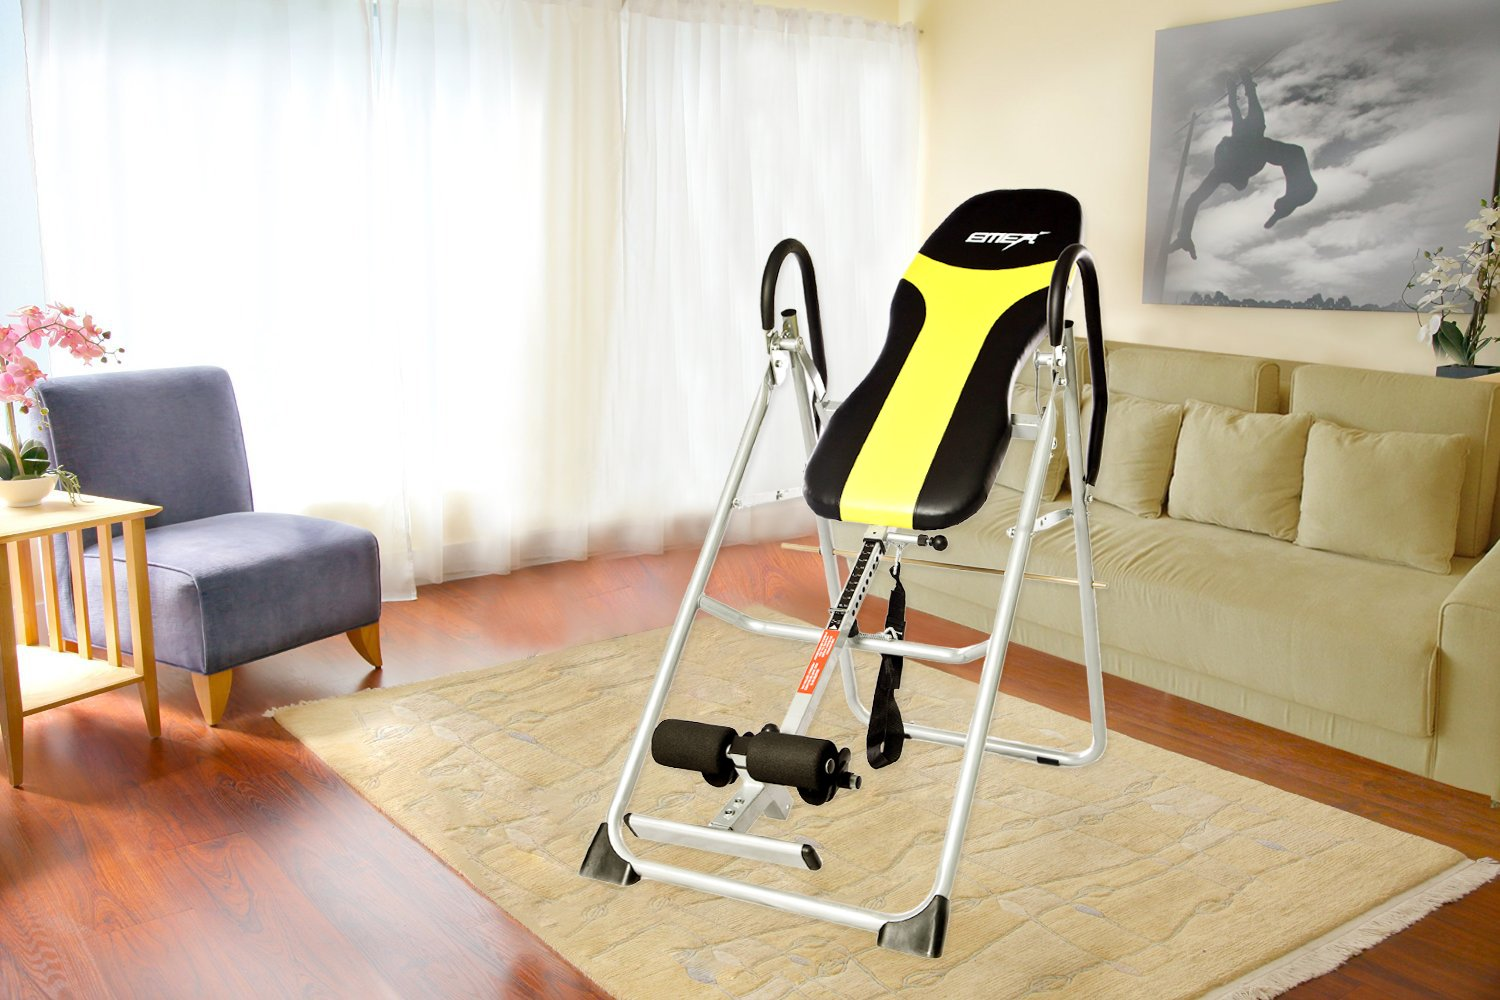 Best Inversion Table 2019 Skip to primary content skip to secondary what is an inversion table? best inversion table 2019